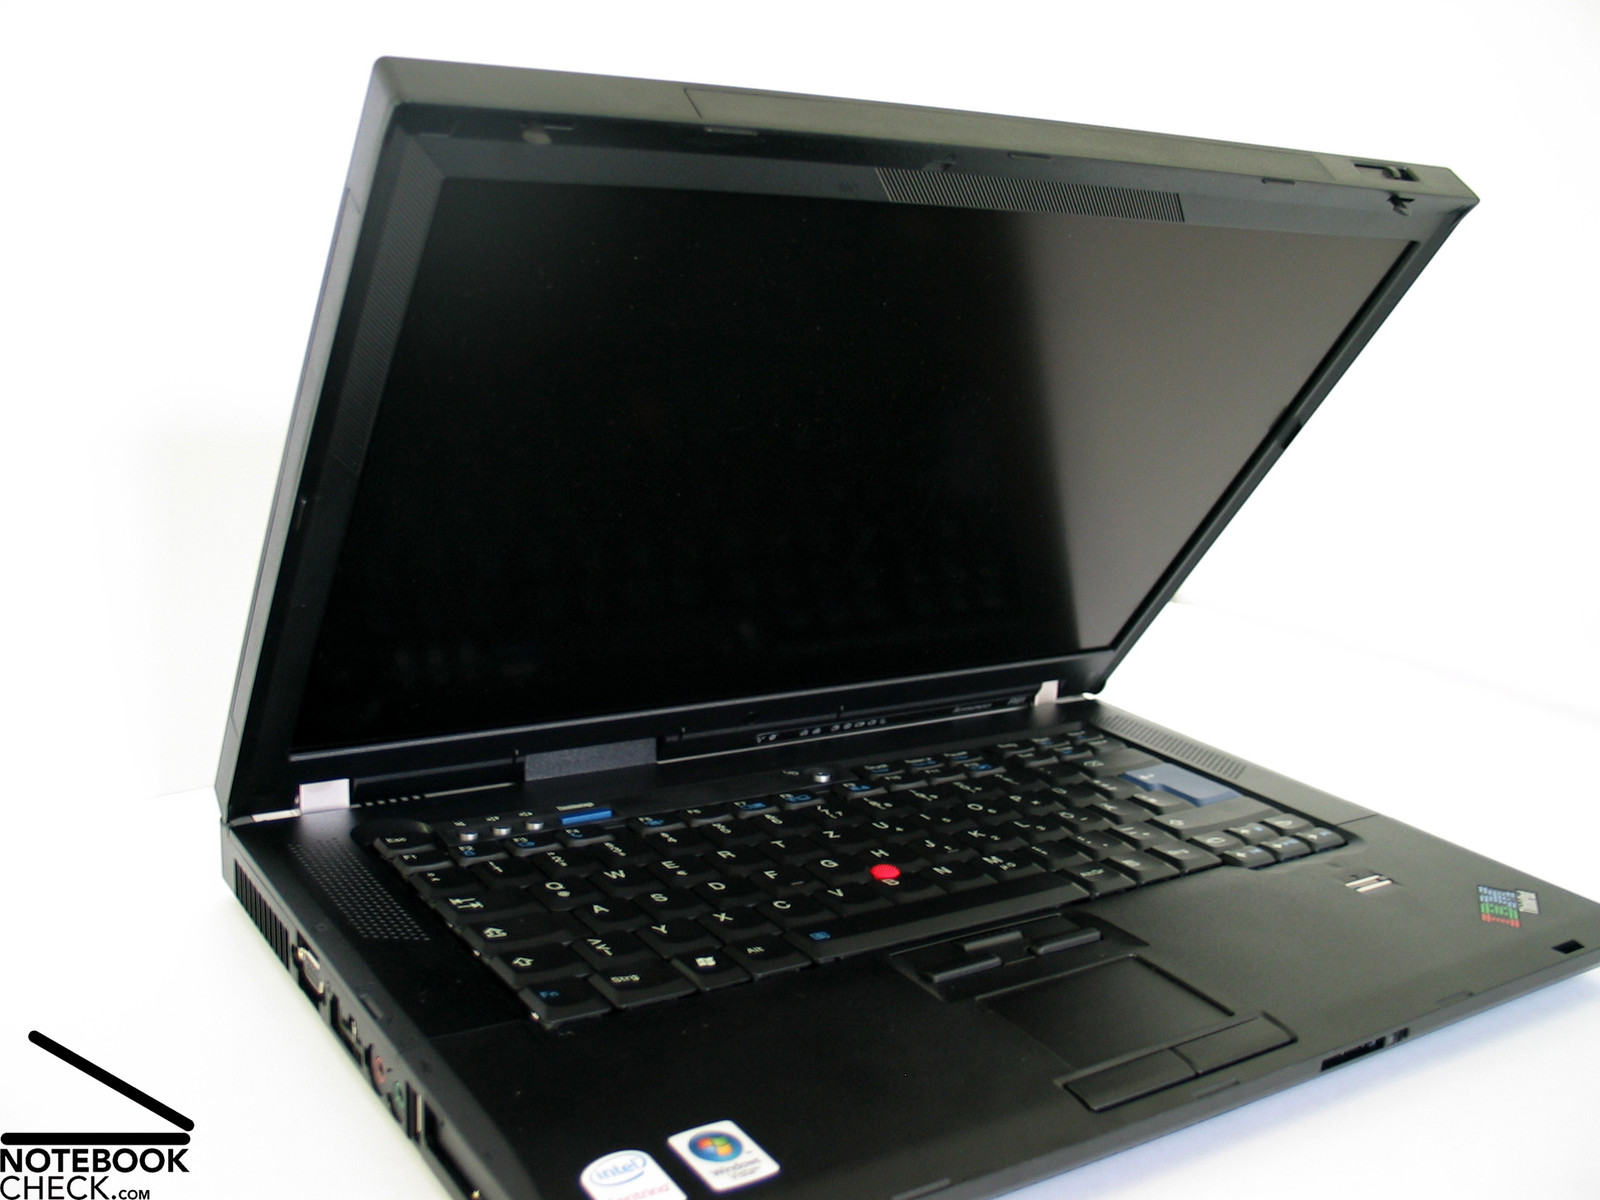 IBM ThinkPad R61e/R61i Windows Vista 64-BIT